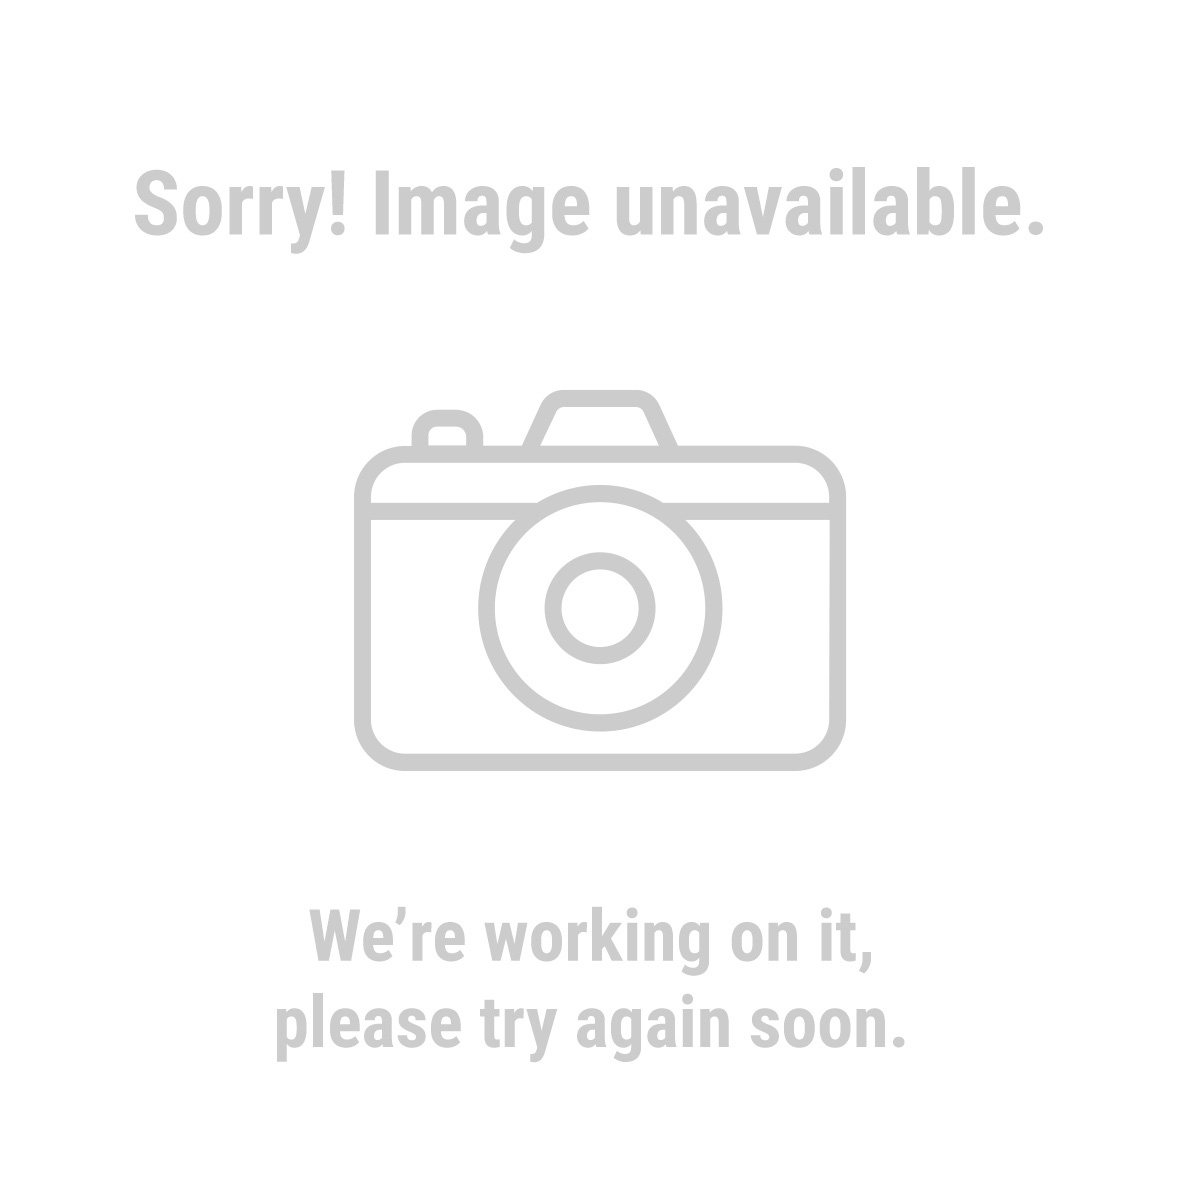 95270 Pack of 6 240 Grit Sanding Sleeves